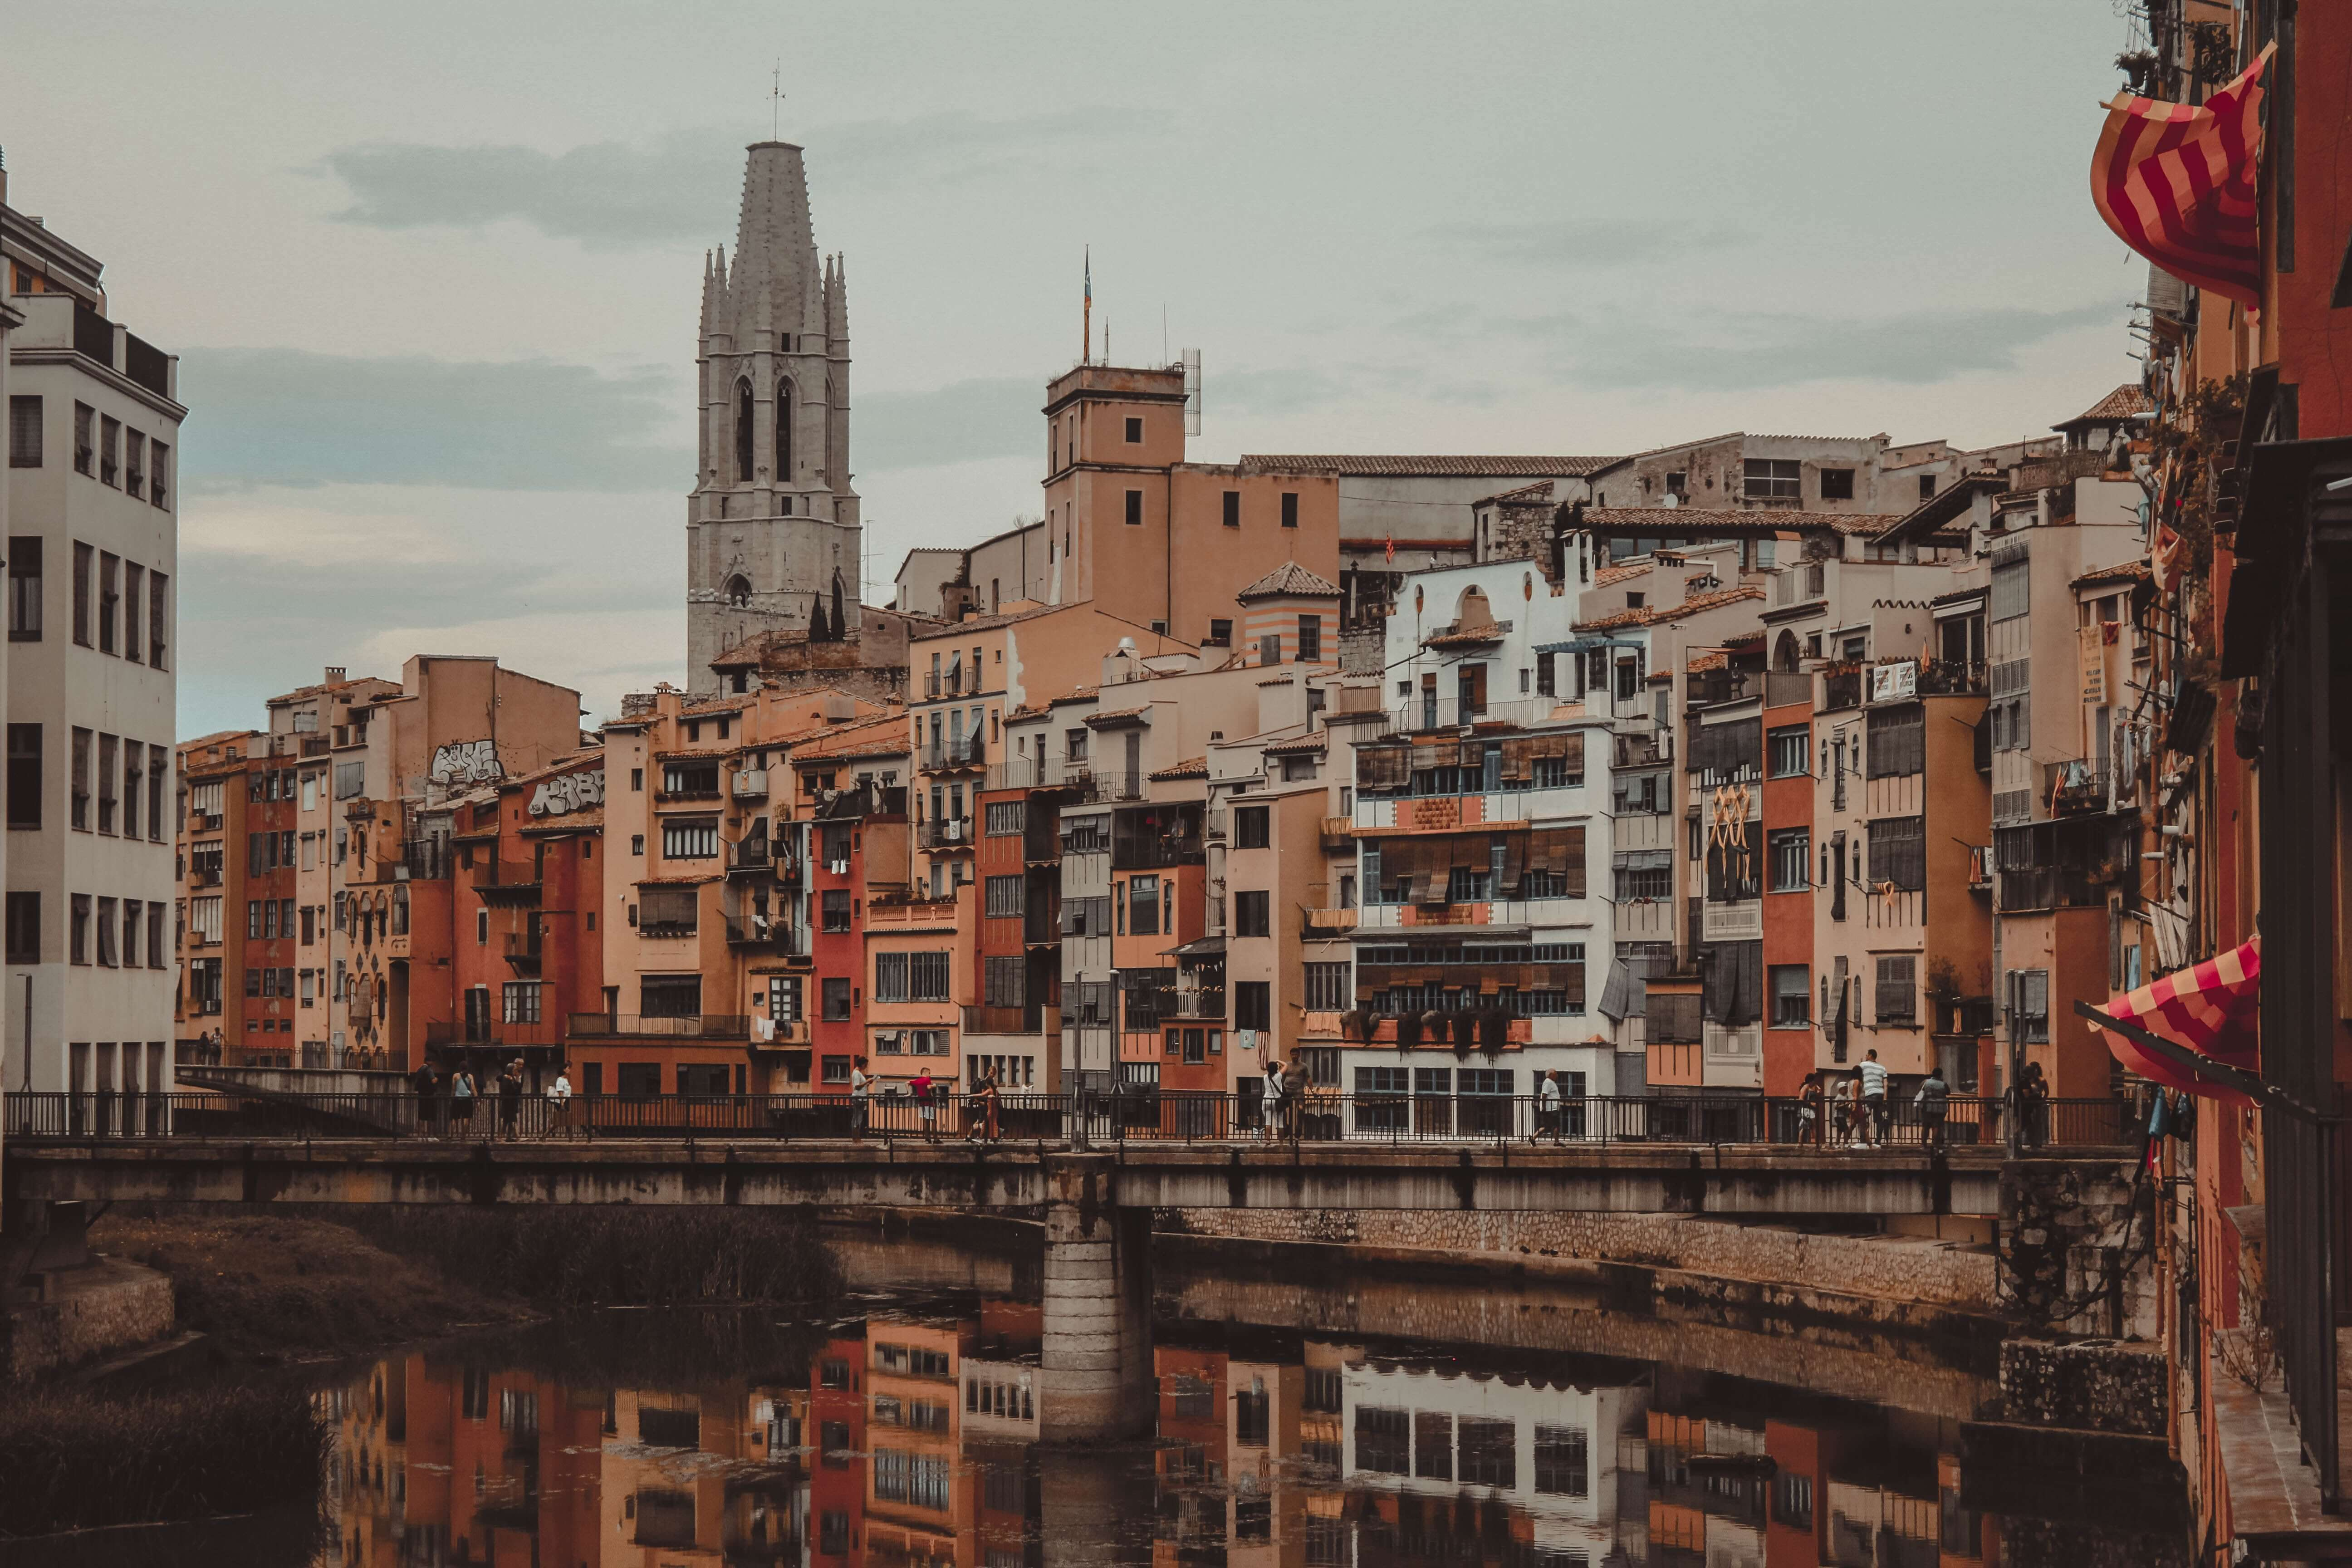 Girona is one of the top spots for autumn travel in Spain